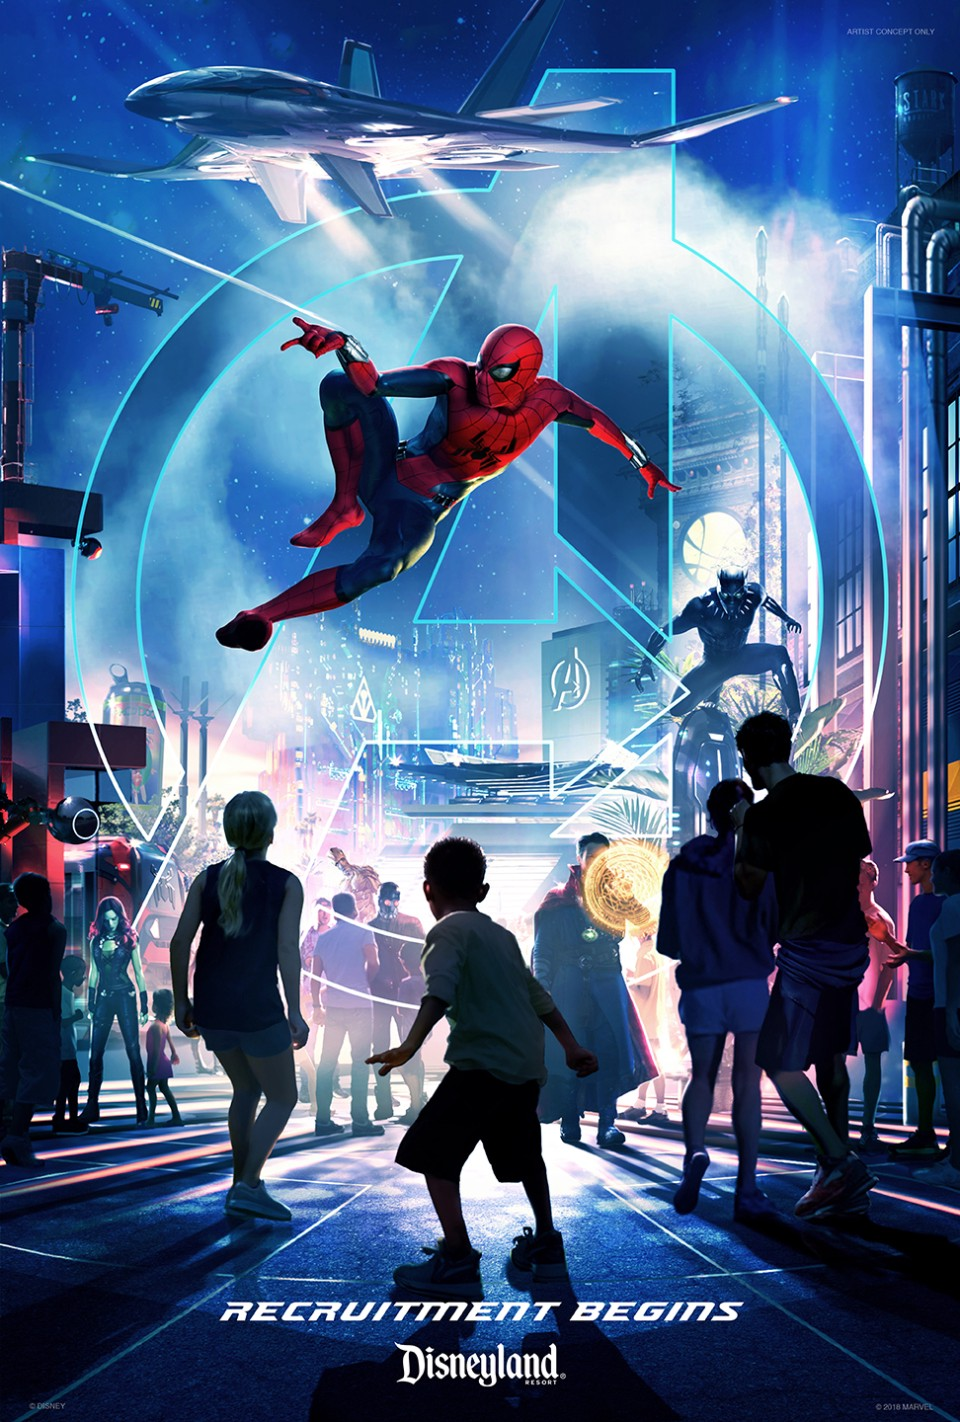 Three Marvel Expansions to Come to Disney Parks by 2020